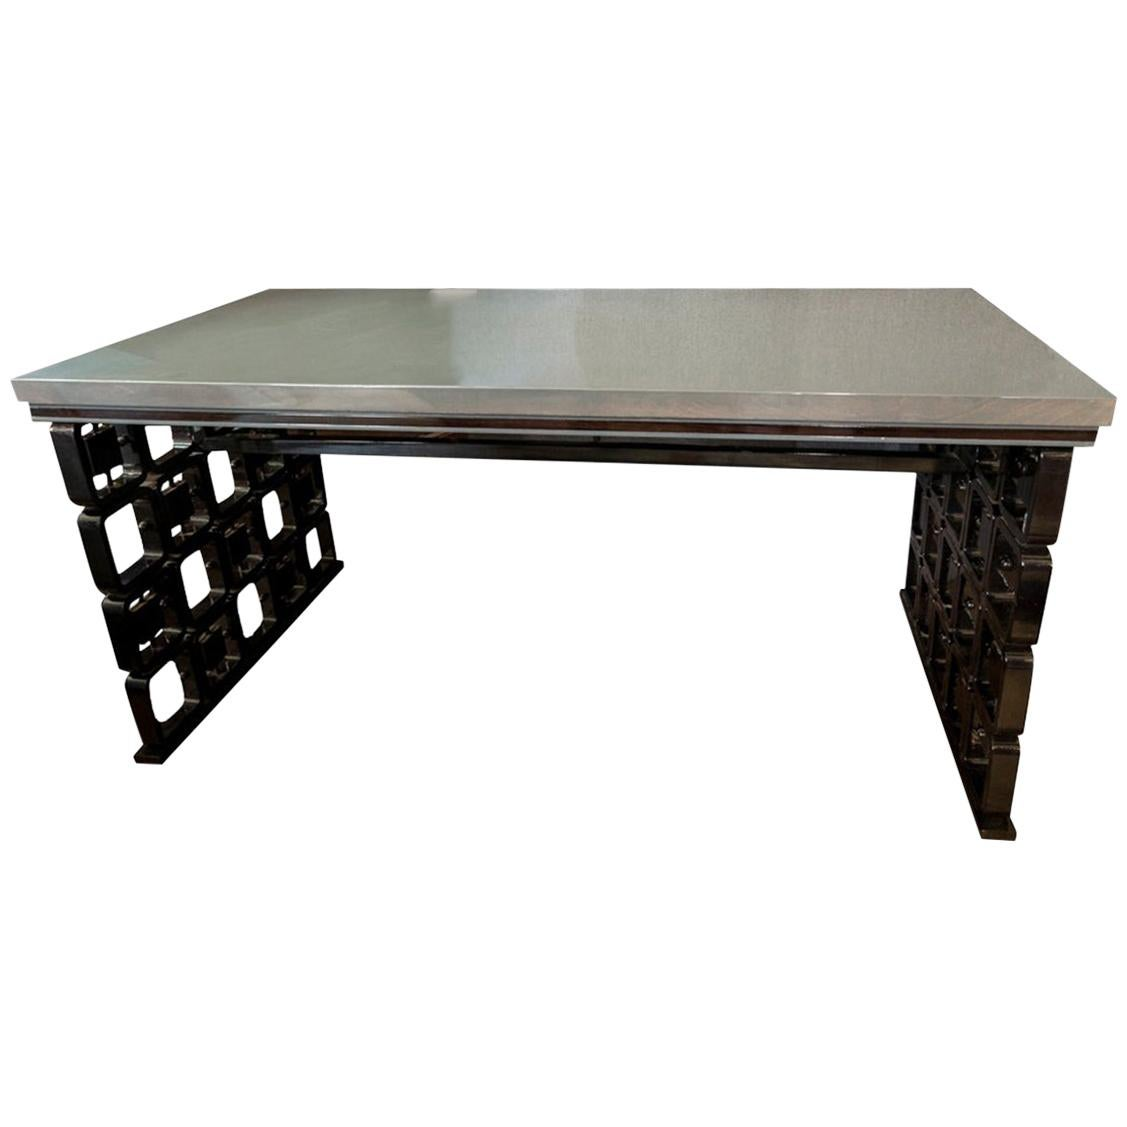 Italy Desk in Borsani Style Walnut Black and Grey Lacquered